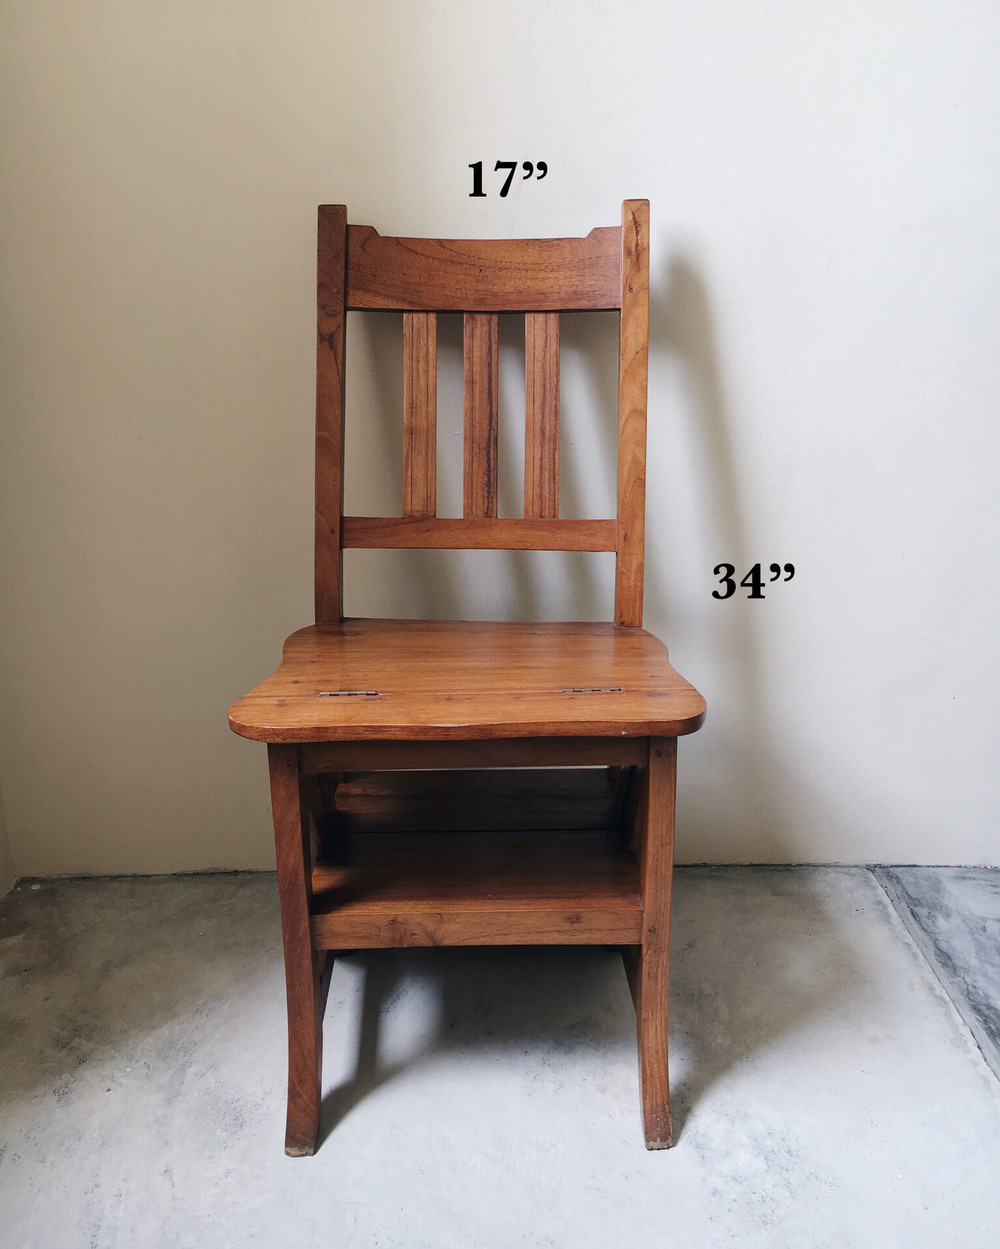 display lib chair 2.jpg